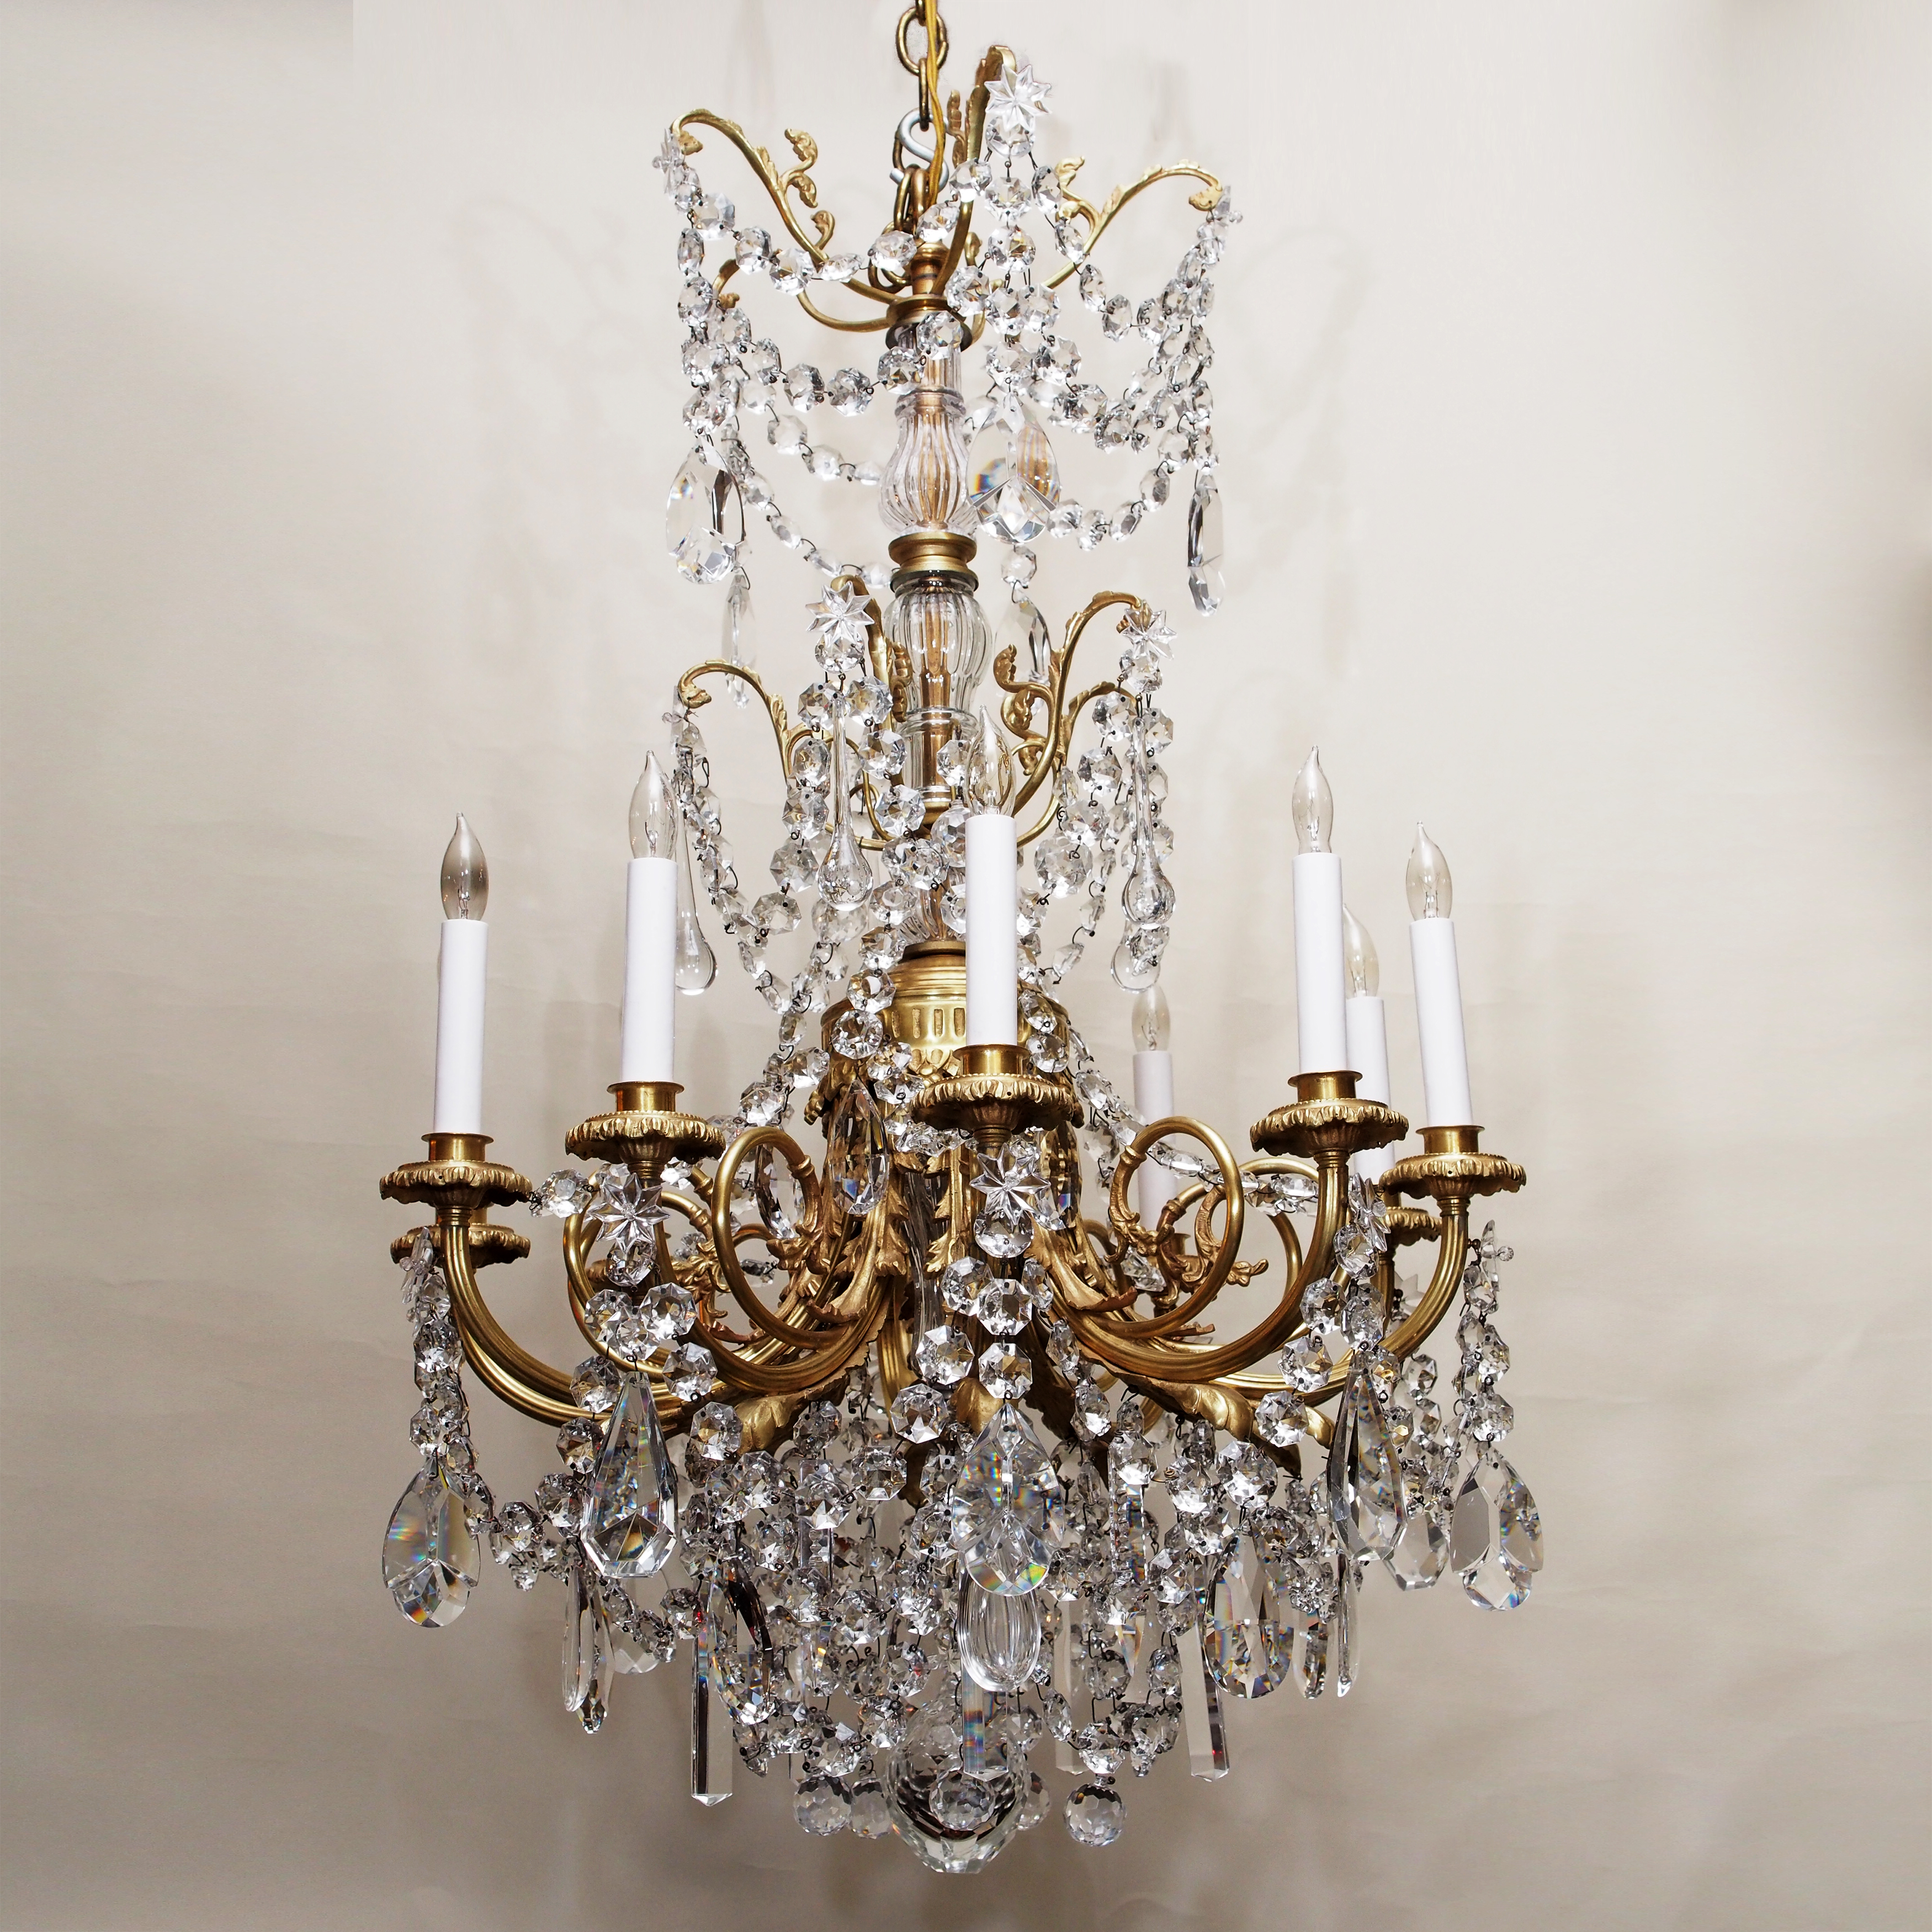 Antique french belle epoque crystal and gold bronze original antique french belle epoque crystal and gold bronze original chandelier circa 1880 arubaitofo Image collections